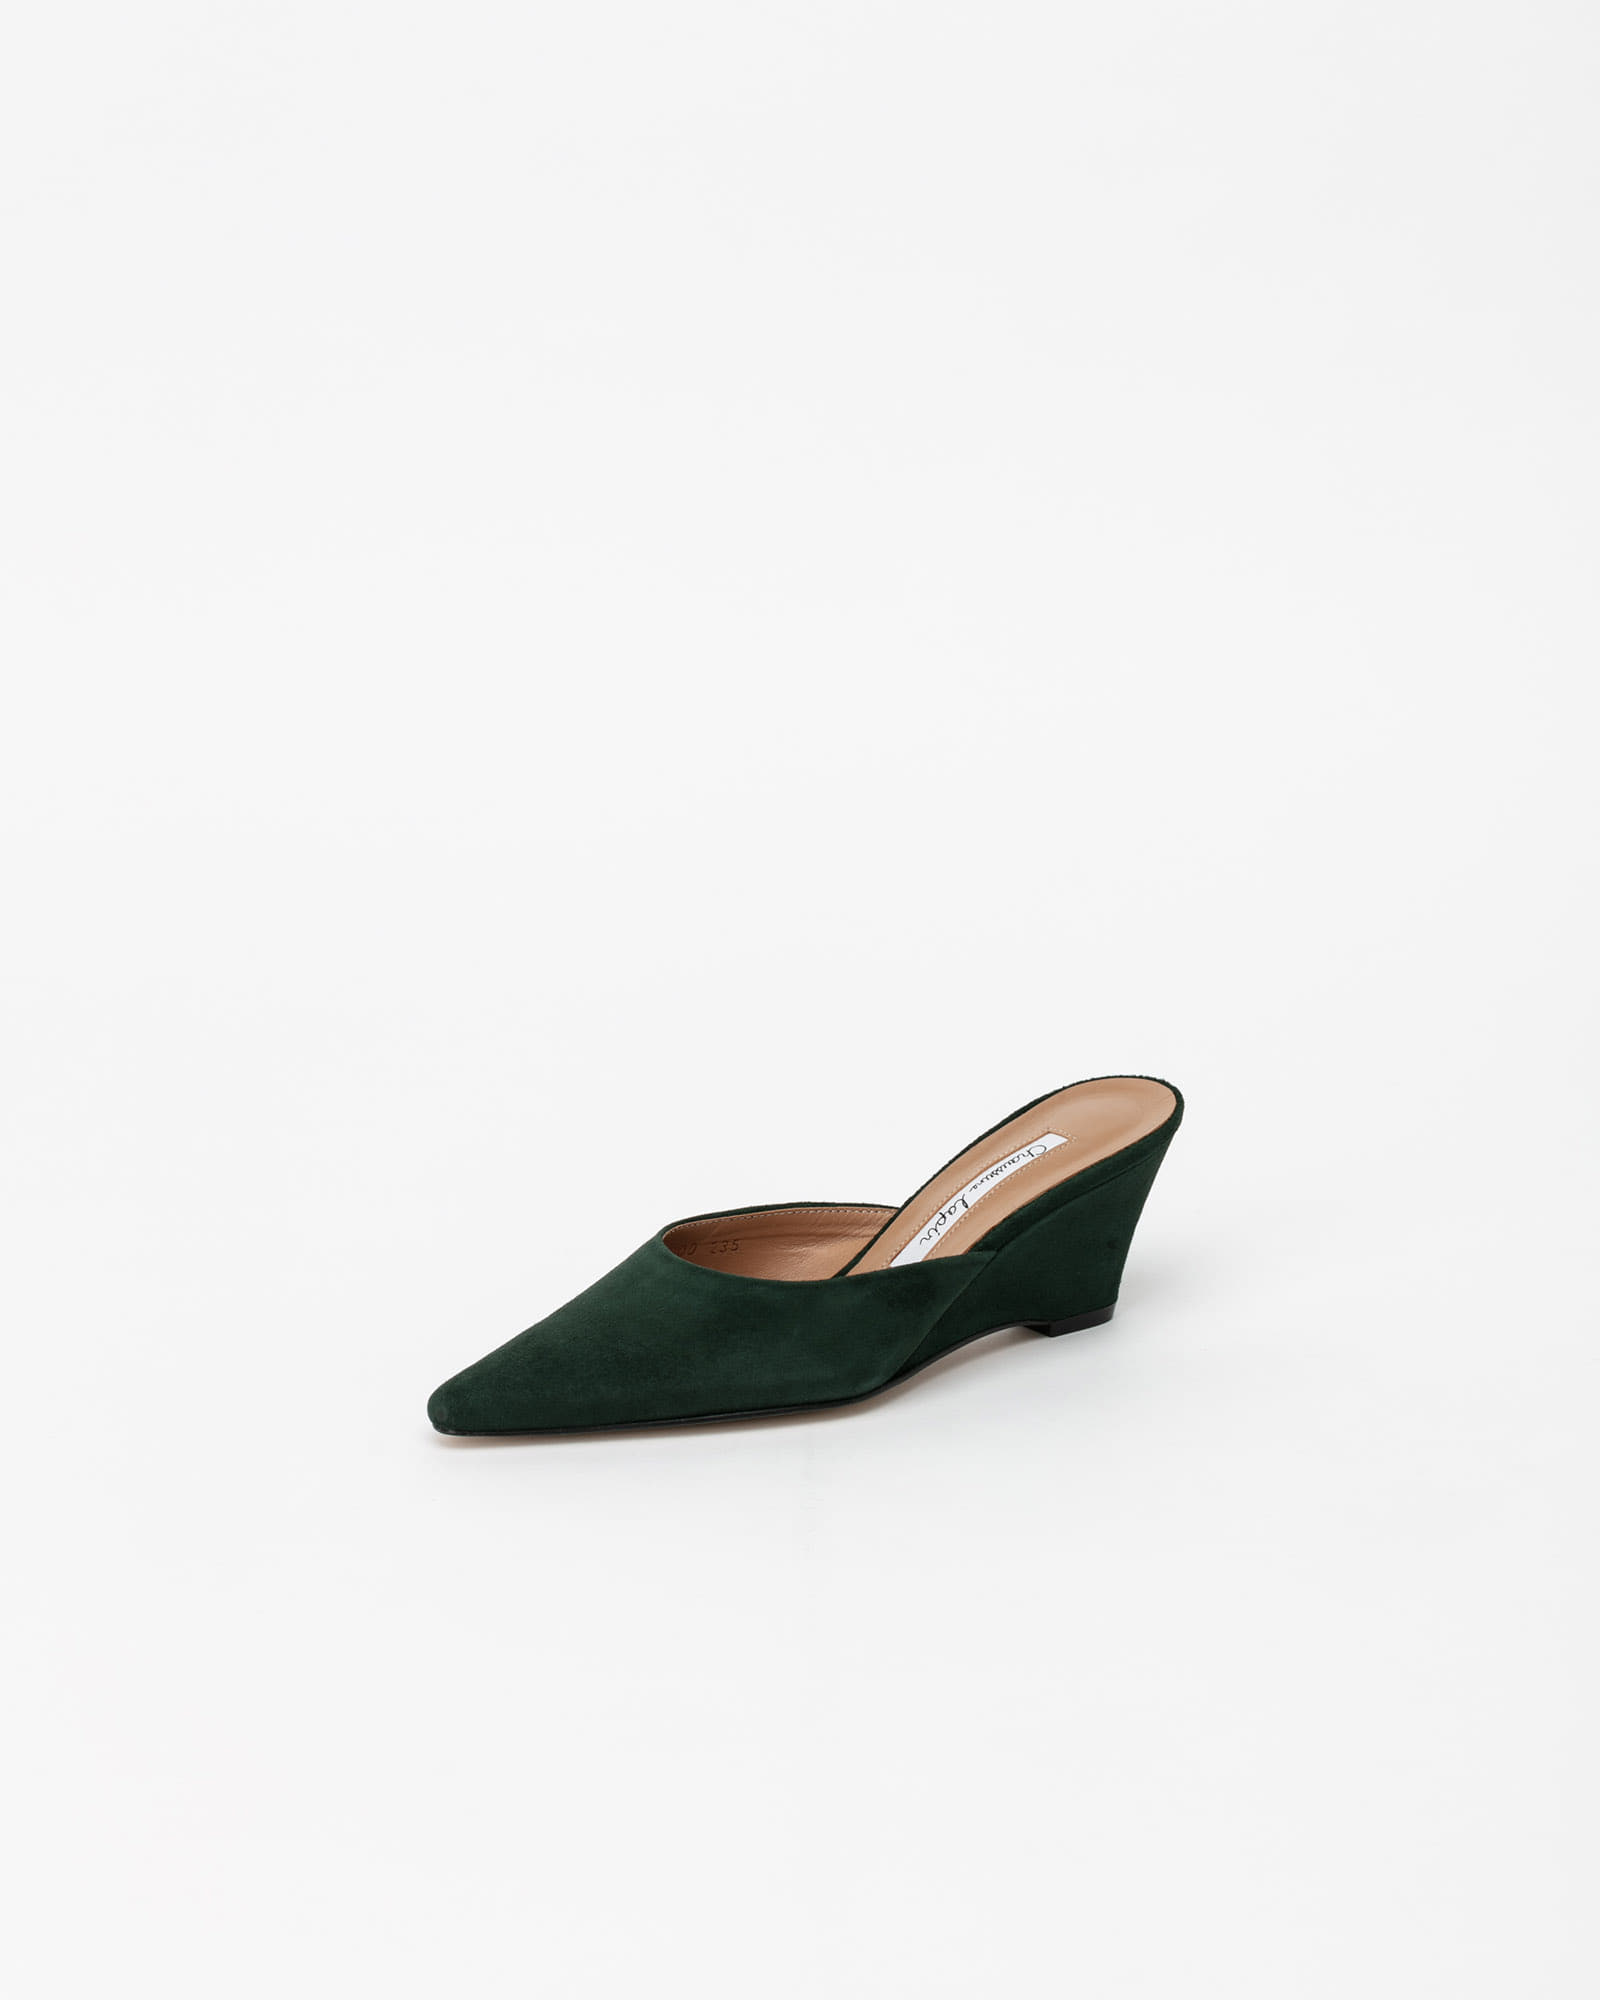 Mune Wedge Mules in Emerald Green Suede